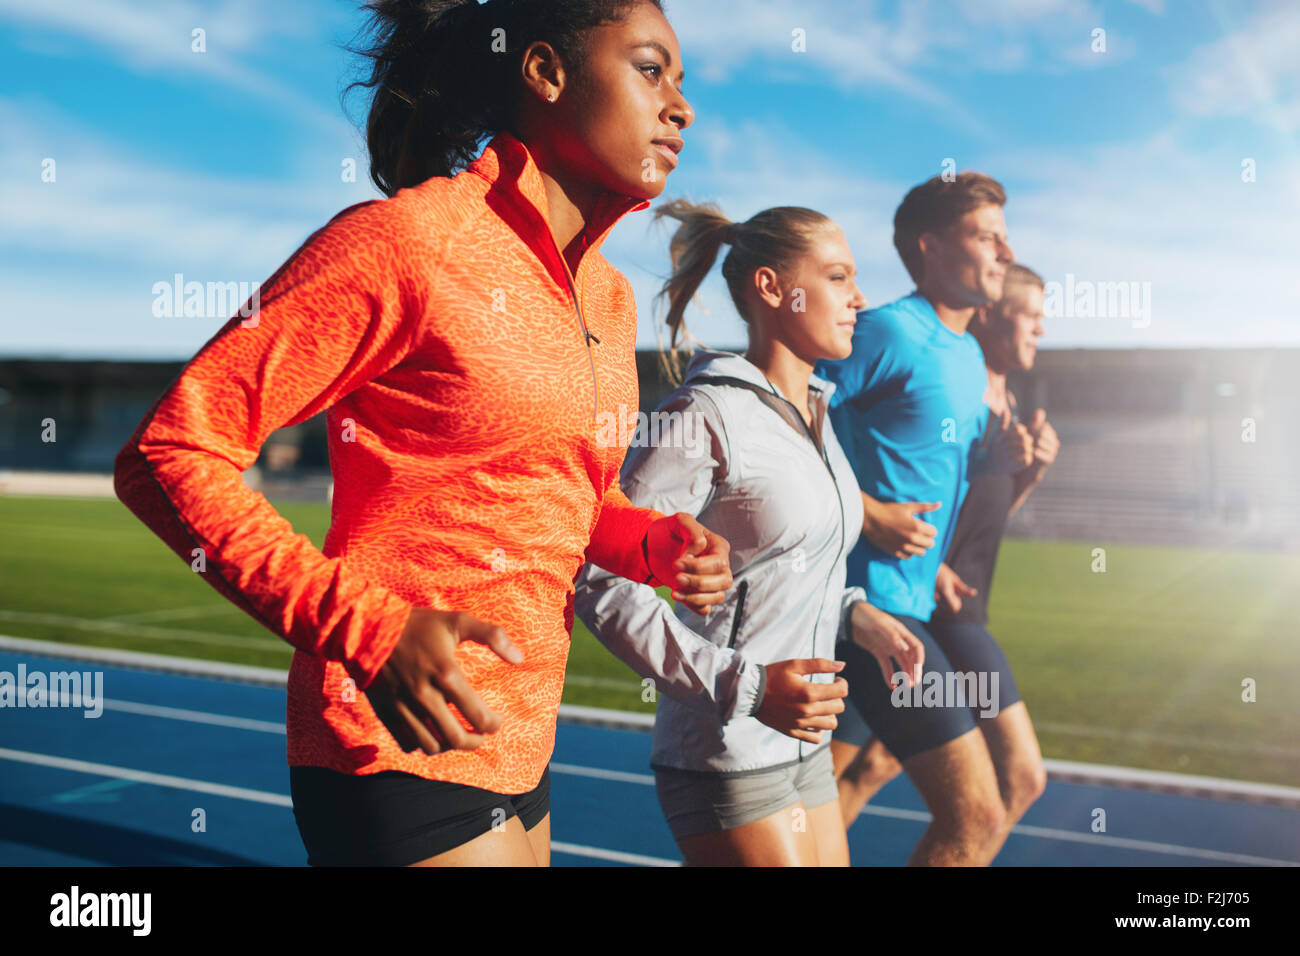 Young african woman running with her team on running track in stadium. Multiracial team of runner practicing at - Stock Image